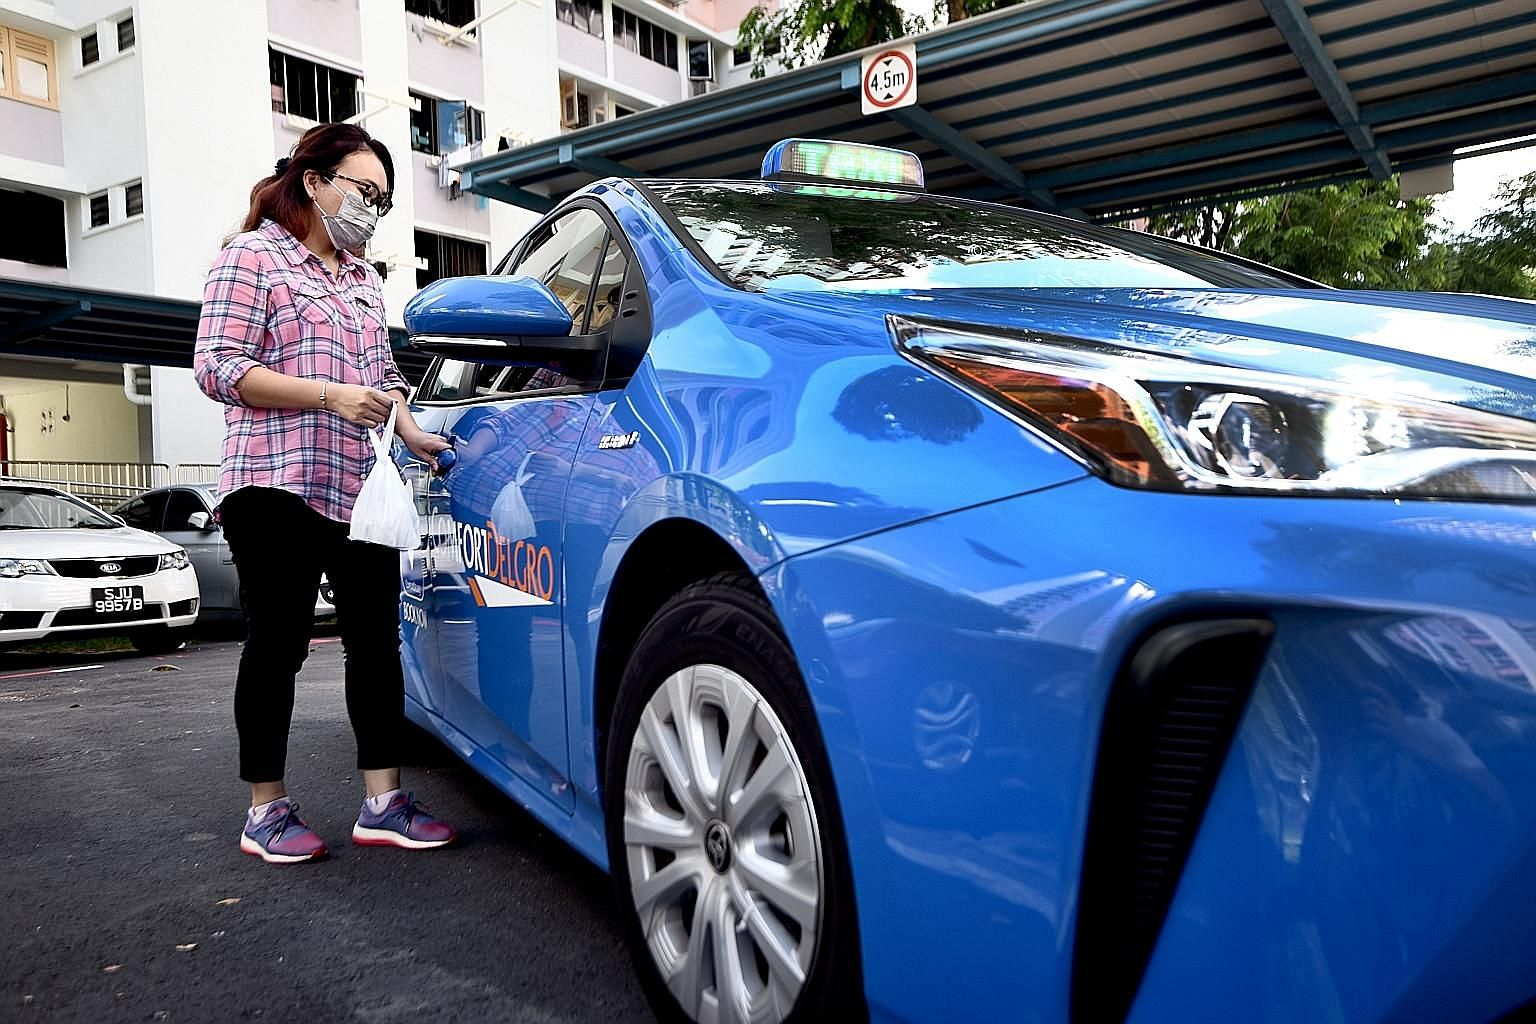 Taxi driver Jade Cho, who has signed up to deliver medicine, said she is glad to have an extra option to increase her earnings. ComfortDelGro said drivers will have to undergo online training before they can start delivering medicine, and they must e